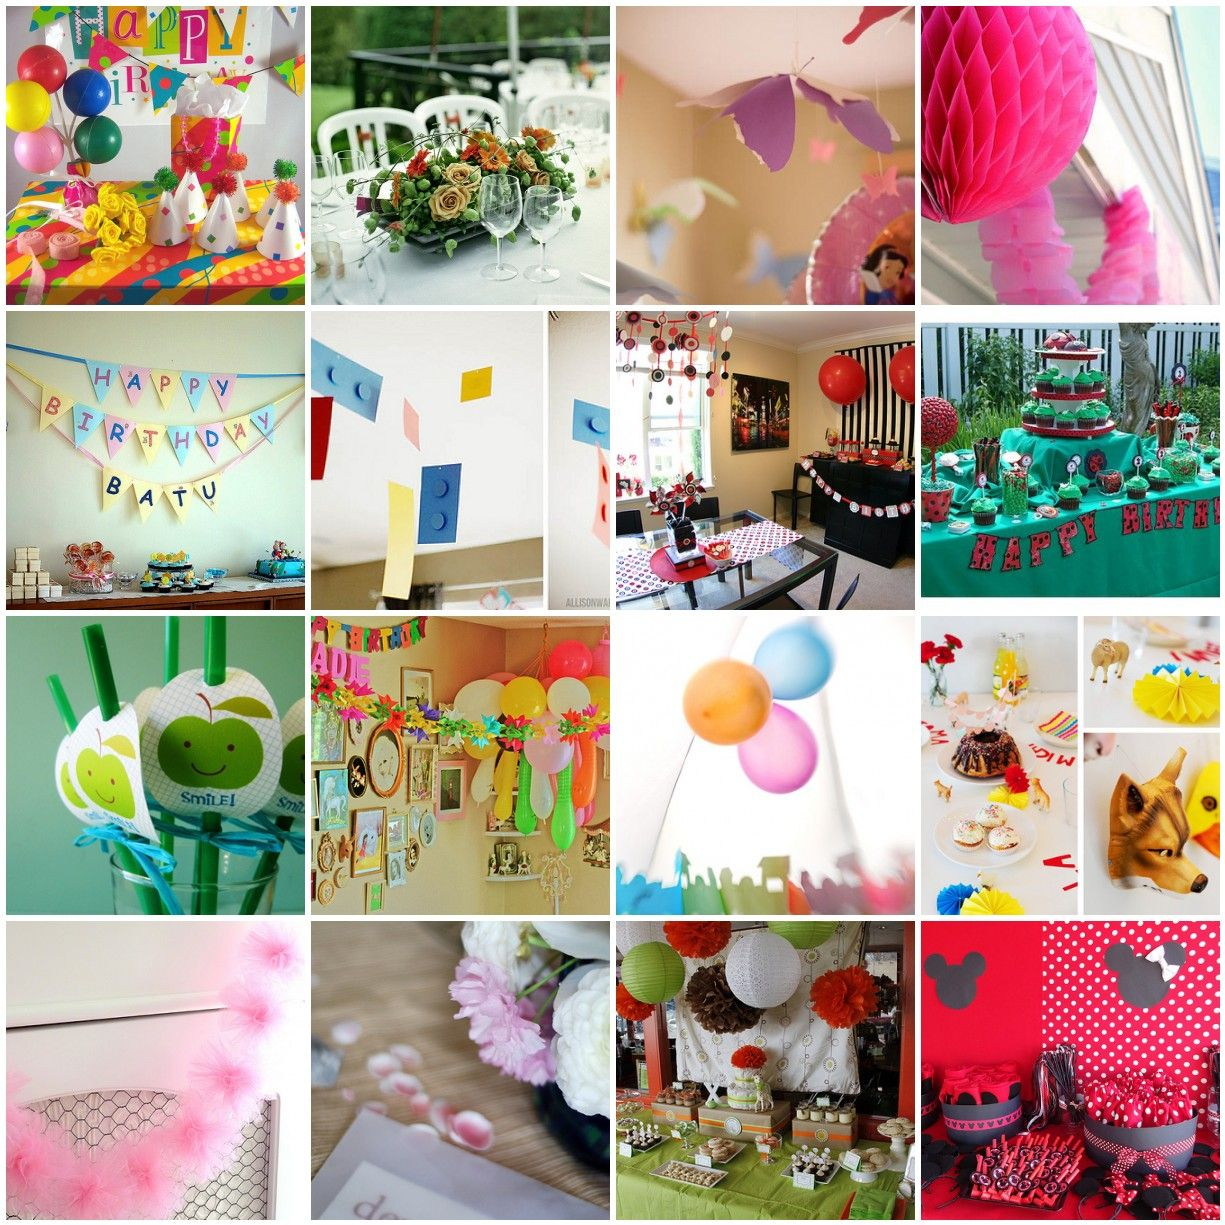 Homemade party decorations decoration ideas party for Indoor diwali decoration